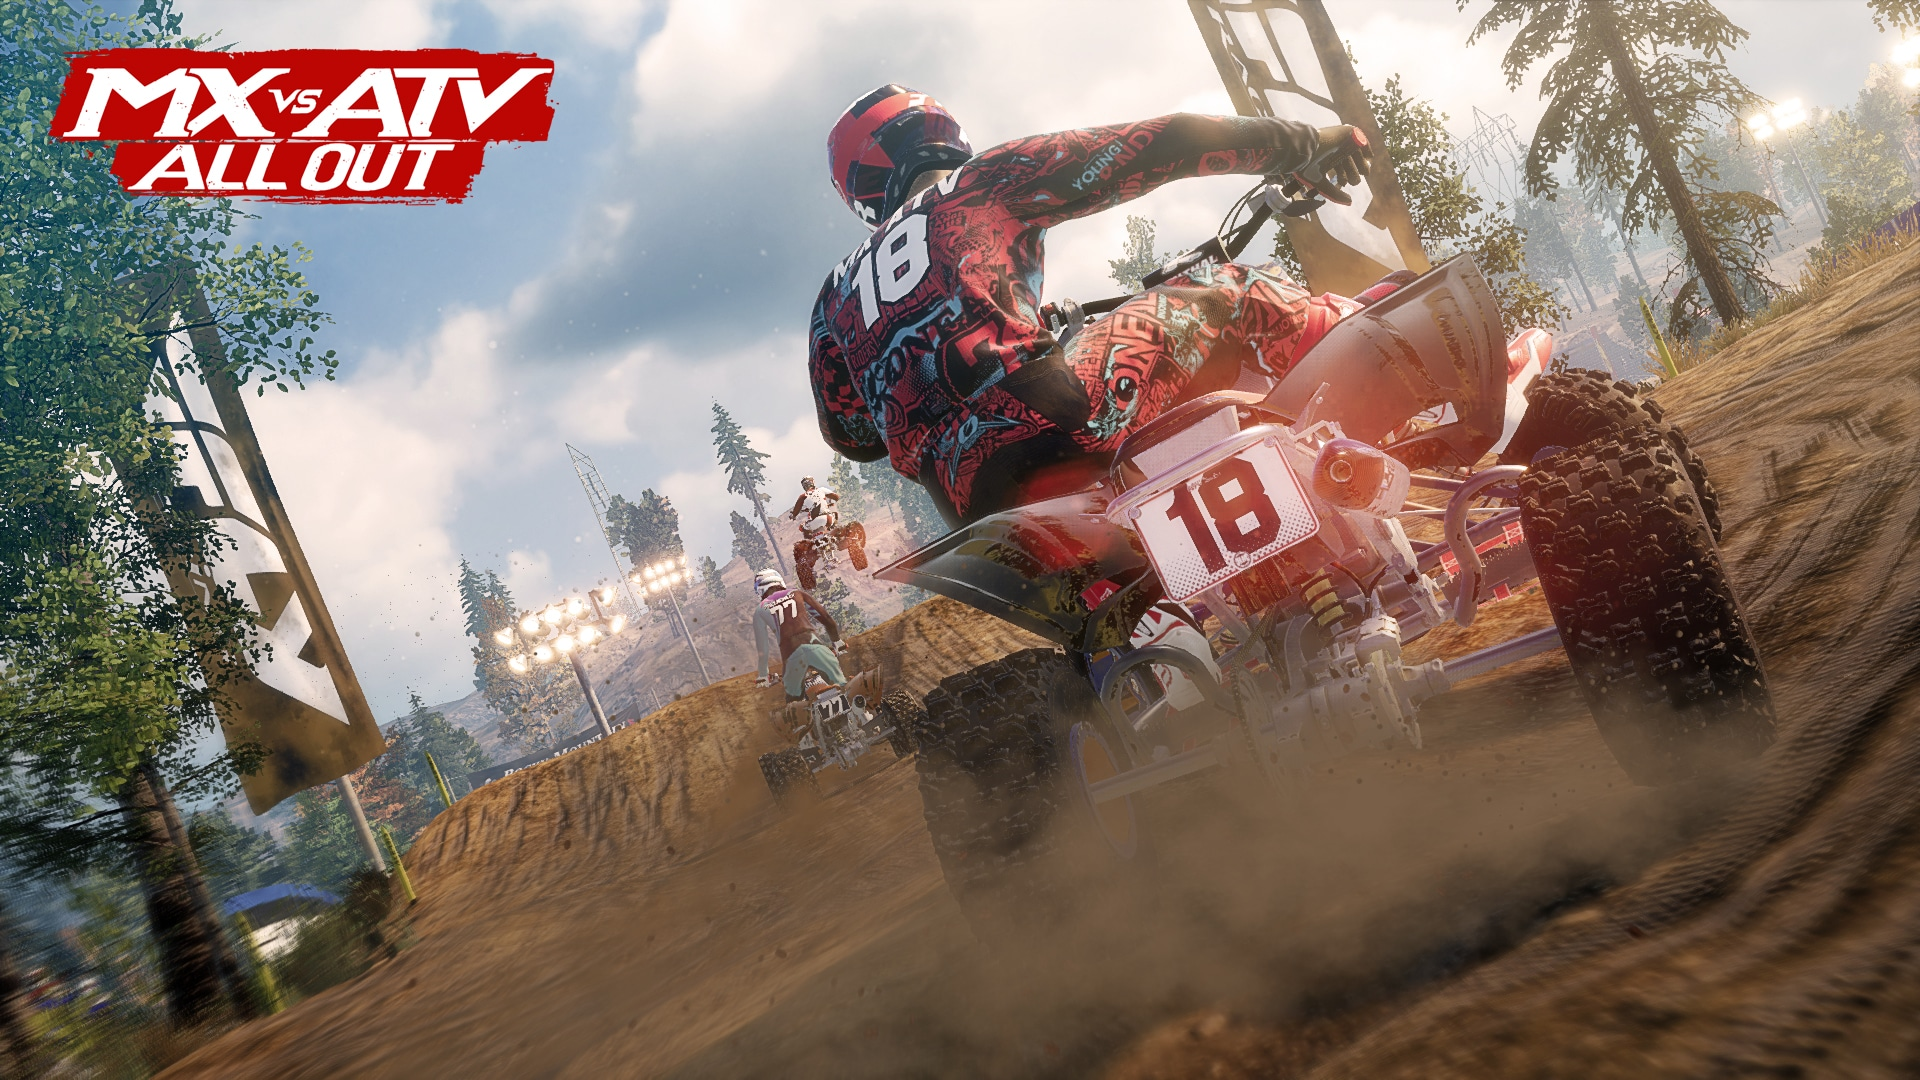 MX-vs-ATV-All-Out-free-download.jpg